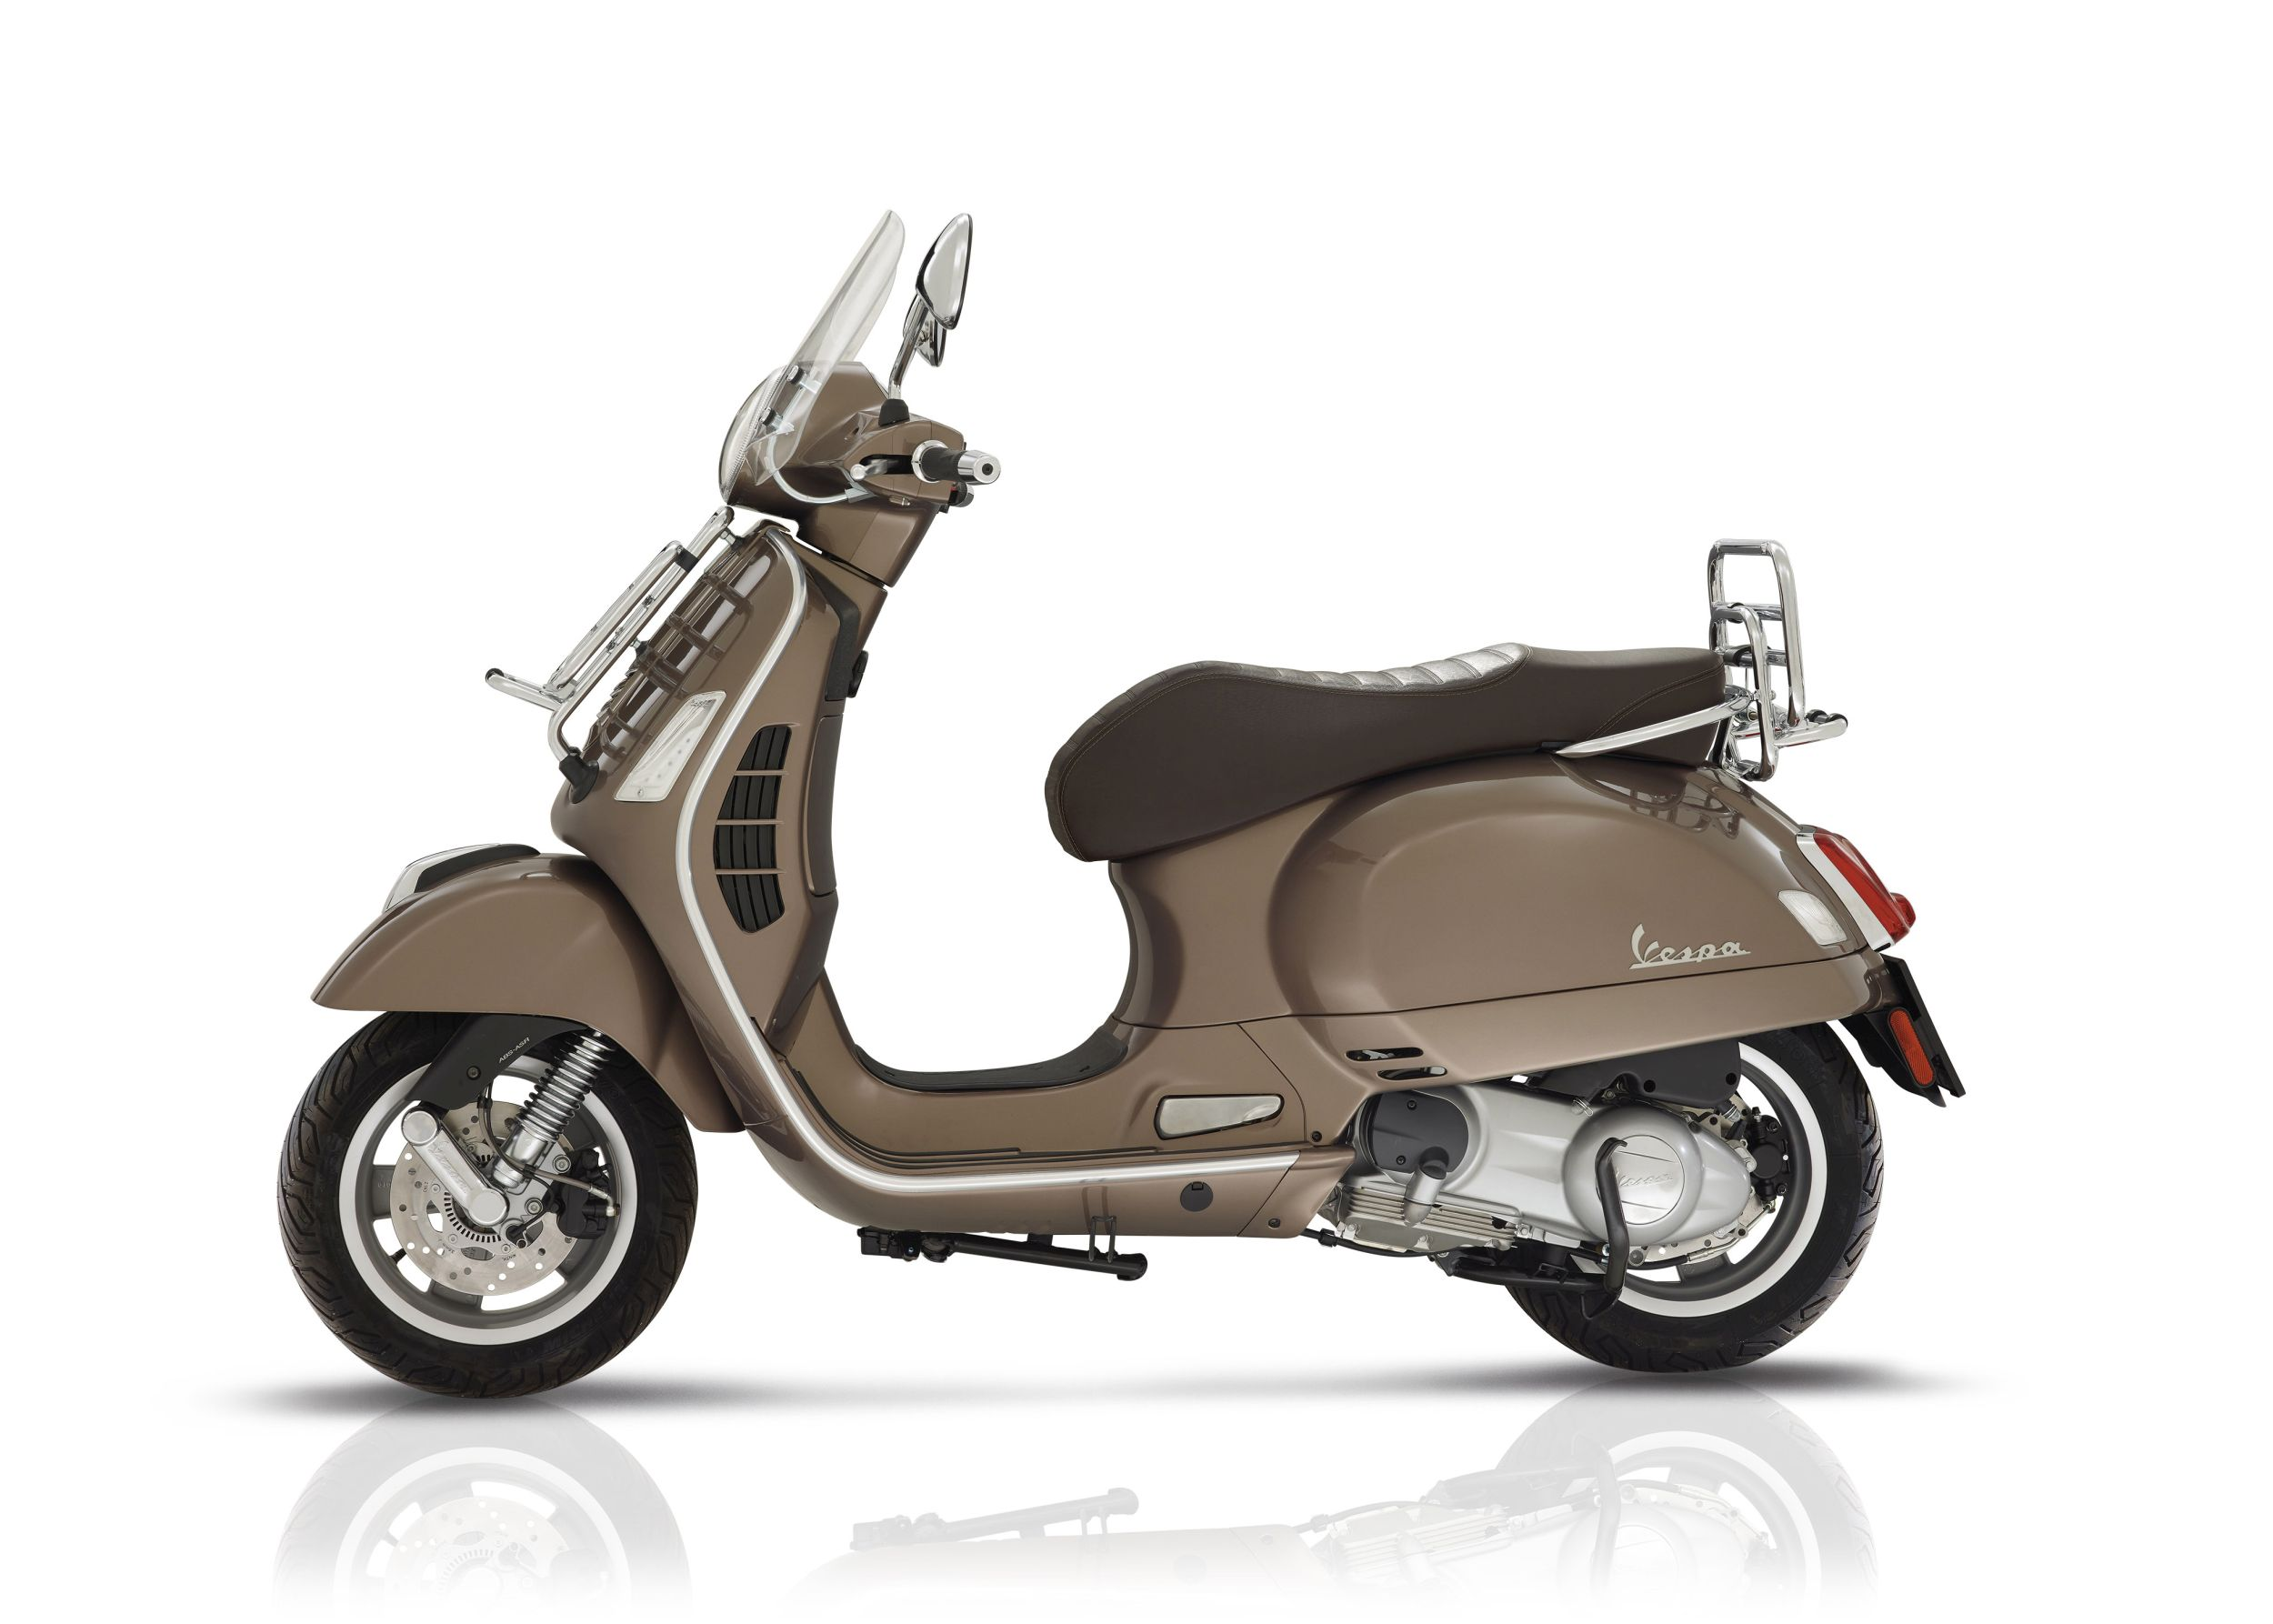 motorrad occasion vespa gts 300 i e touring kaufen. Black Bedroom Furniture Sets. Home Design Ideas